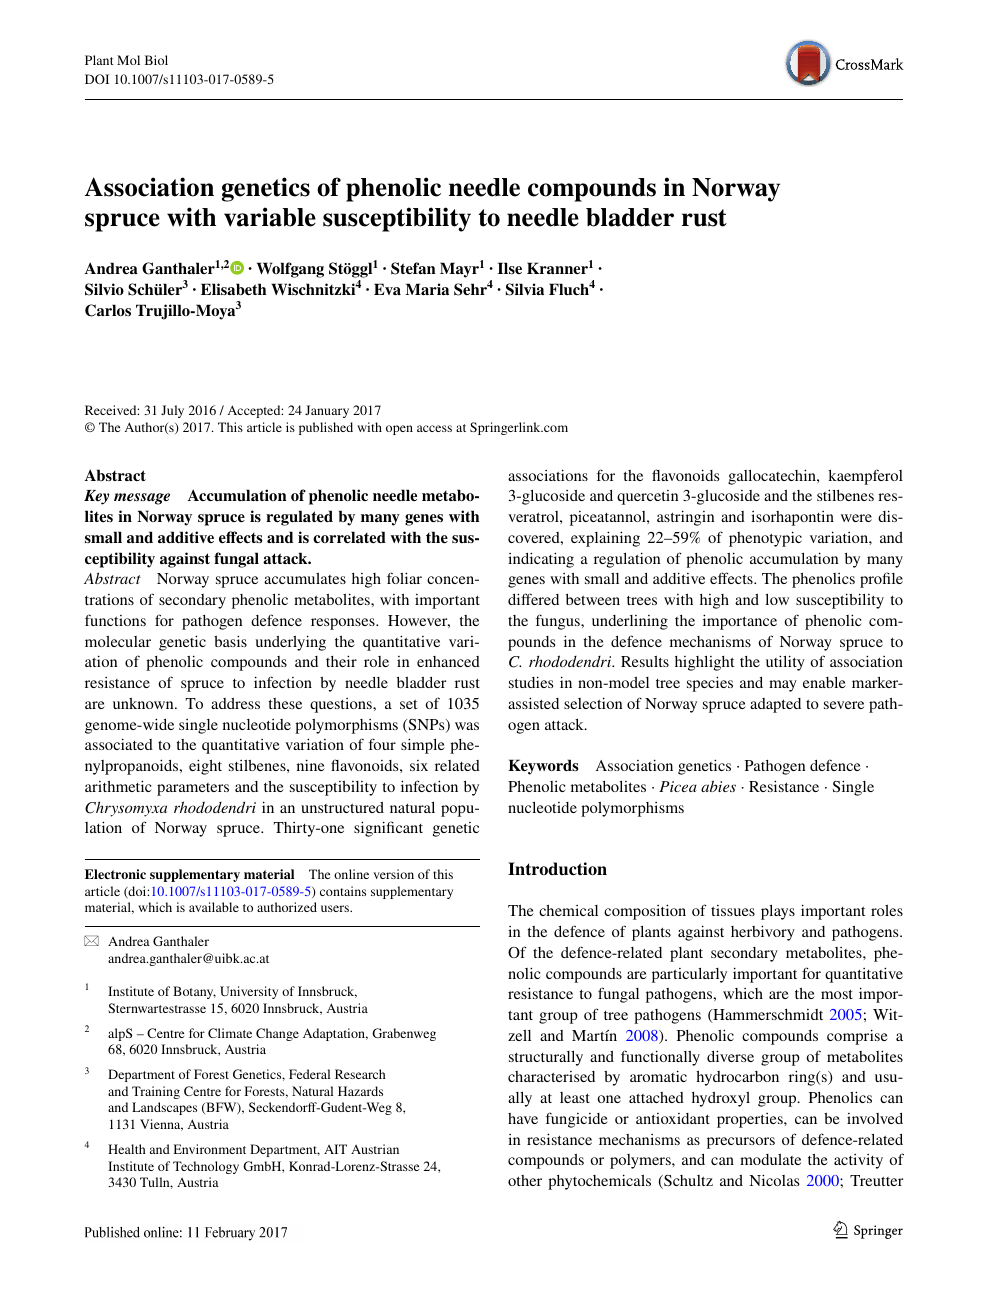 Association genetics of phenolic needle compounds in Norway